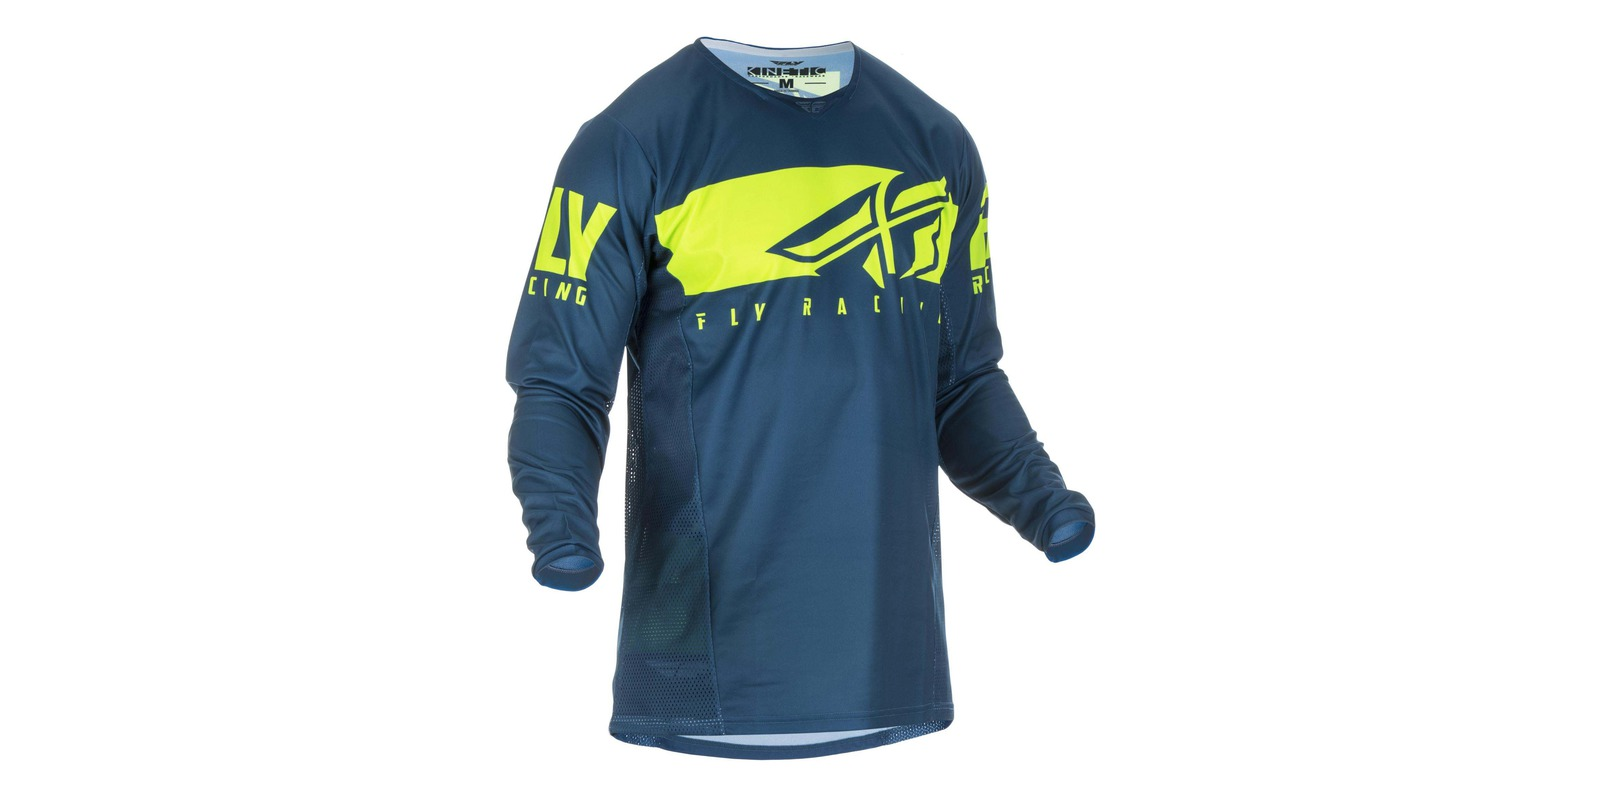 dres Kinetic SHIELD 2019, FLY RACING - USA (modrá/hi-vis, vel. 2XL)